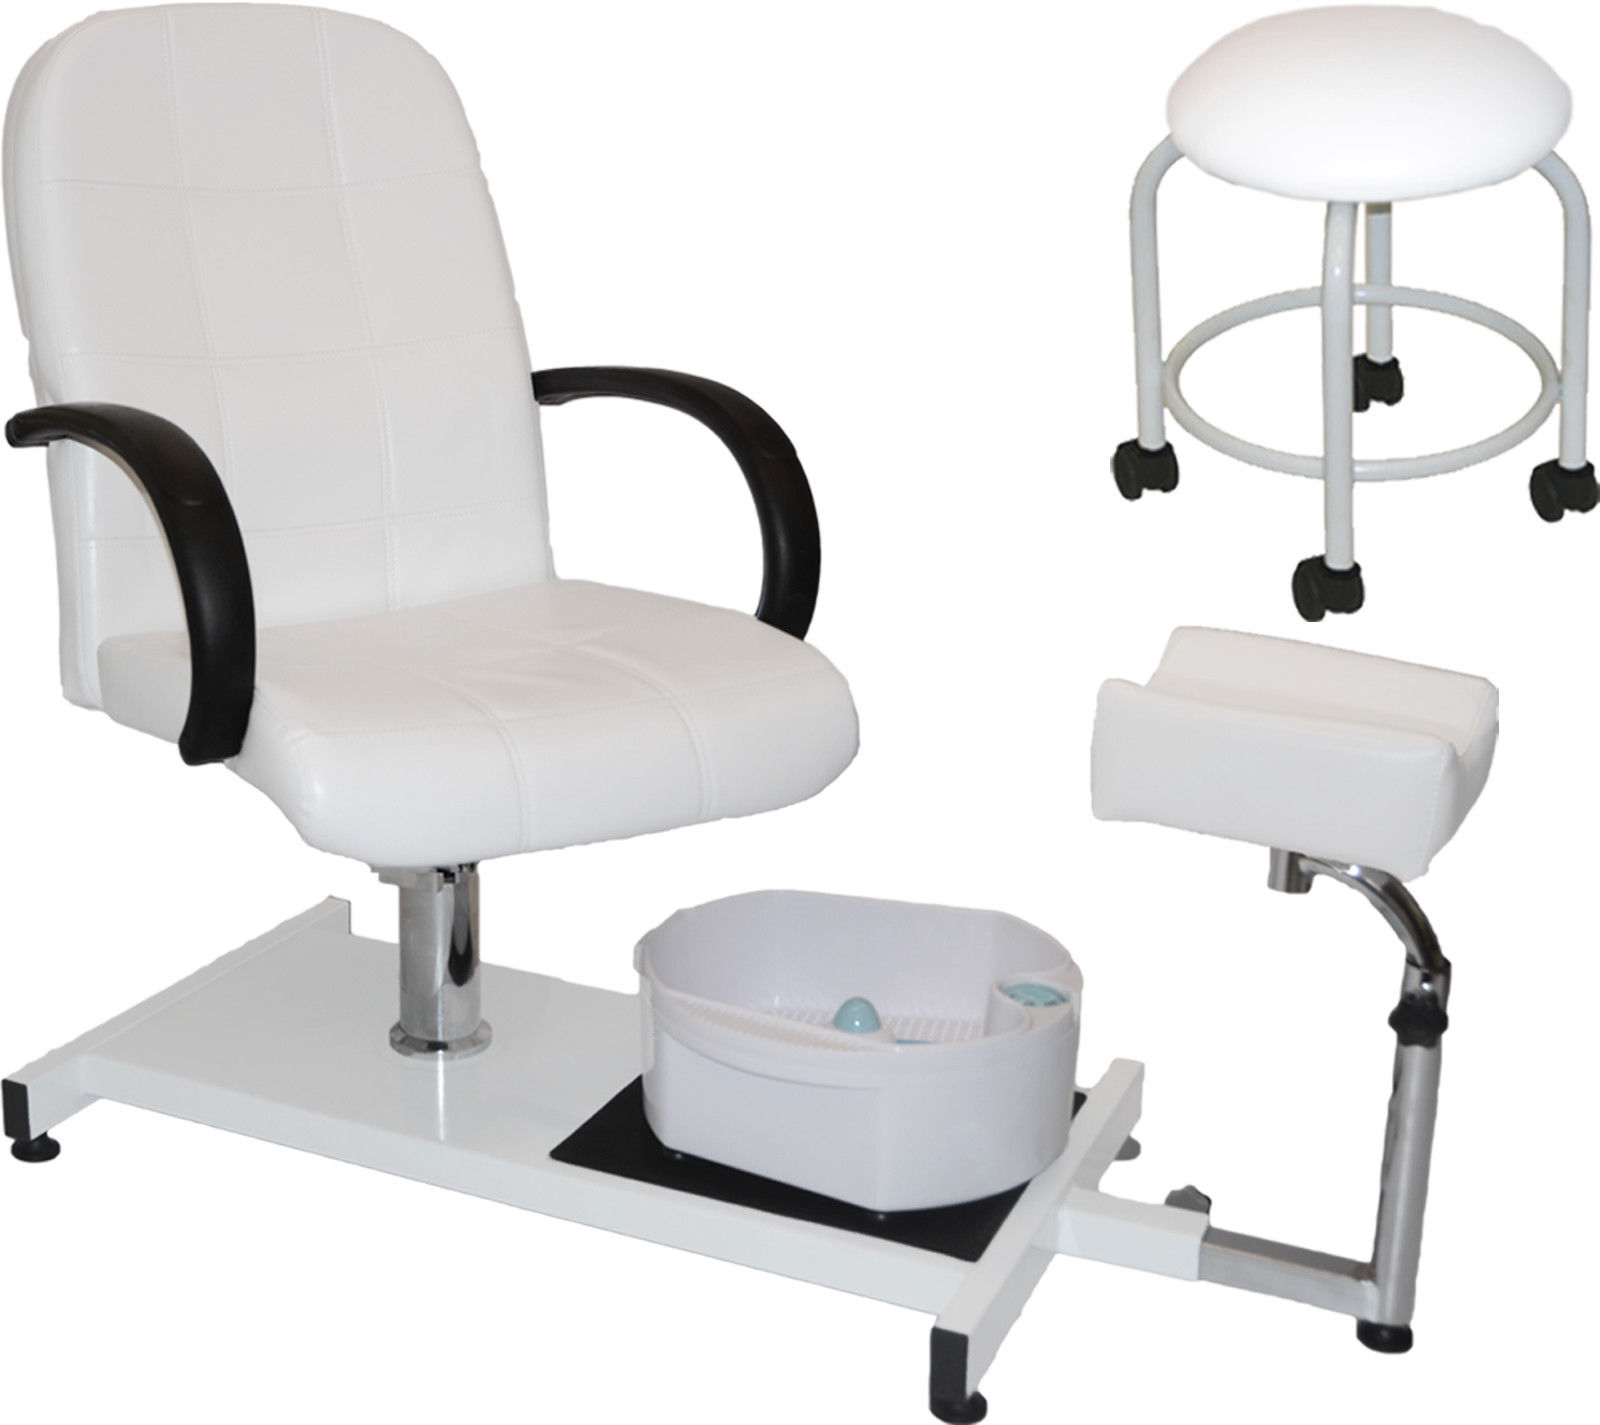 NEW PEDICURE STATION MASSAGE FOOT SPA BEAUTY SALON CHAIR ...